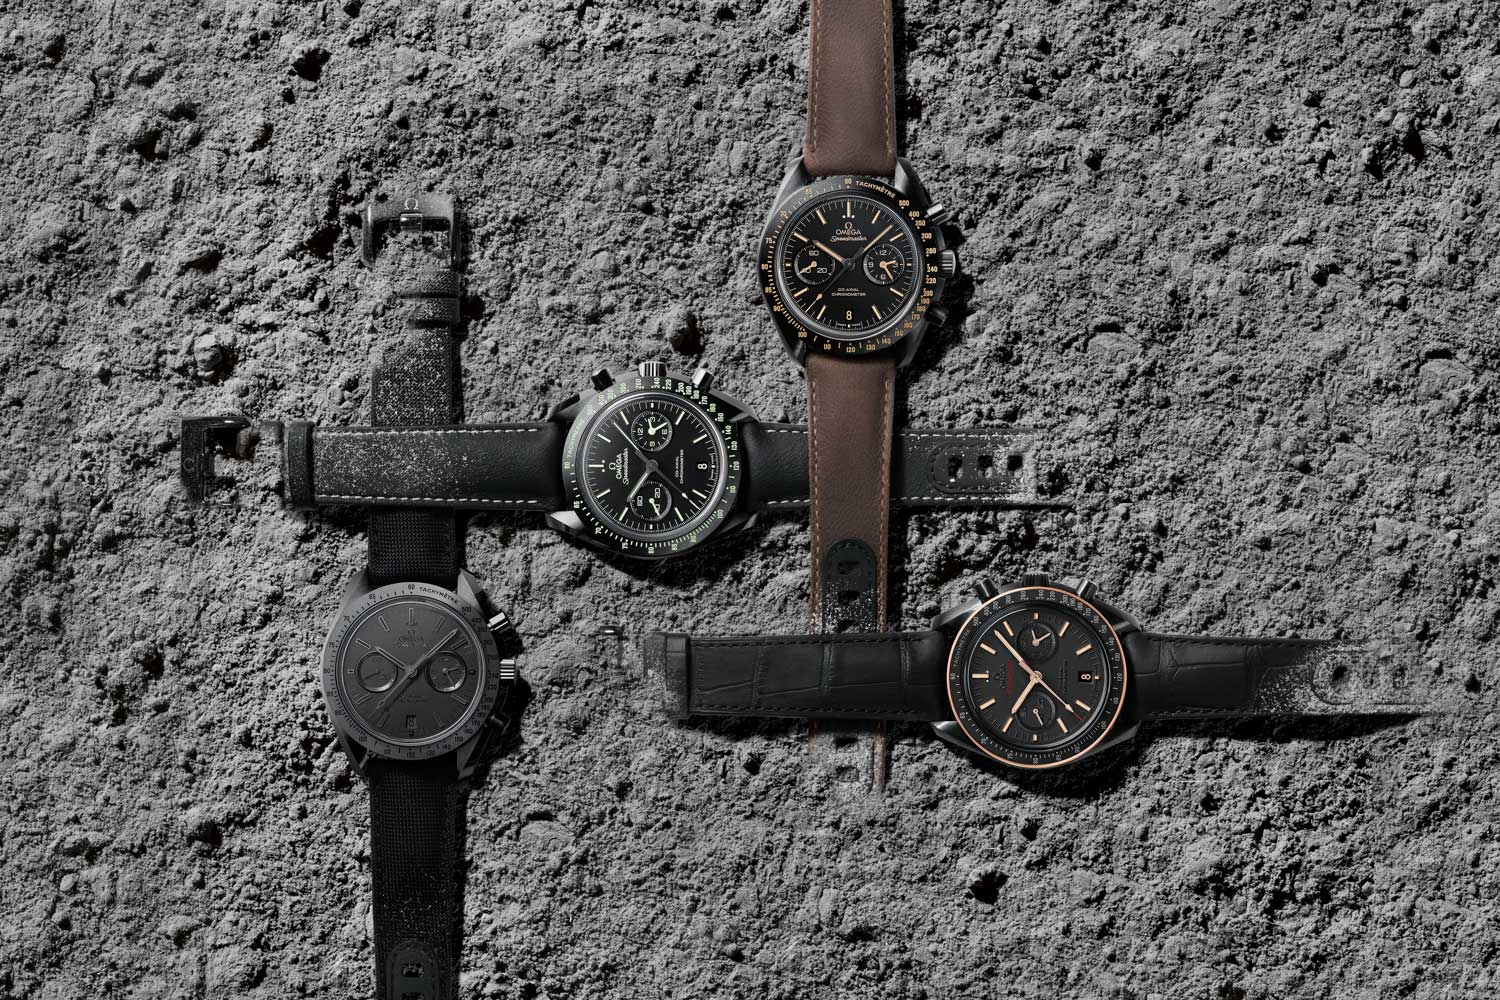 Four versions of the Speedmaster were added to the Dark Side of the Moon Family in 2015: Black Black ref. 311.92.44.51.01.005, Pitch Black ref. 311.92.44.51.01.004. Vintage Black ref. 311.92.44.51.01.006 and, lastly, Sedna Black ref. 311.63.44.51.06.001